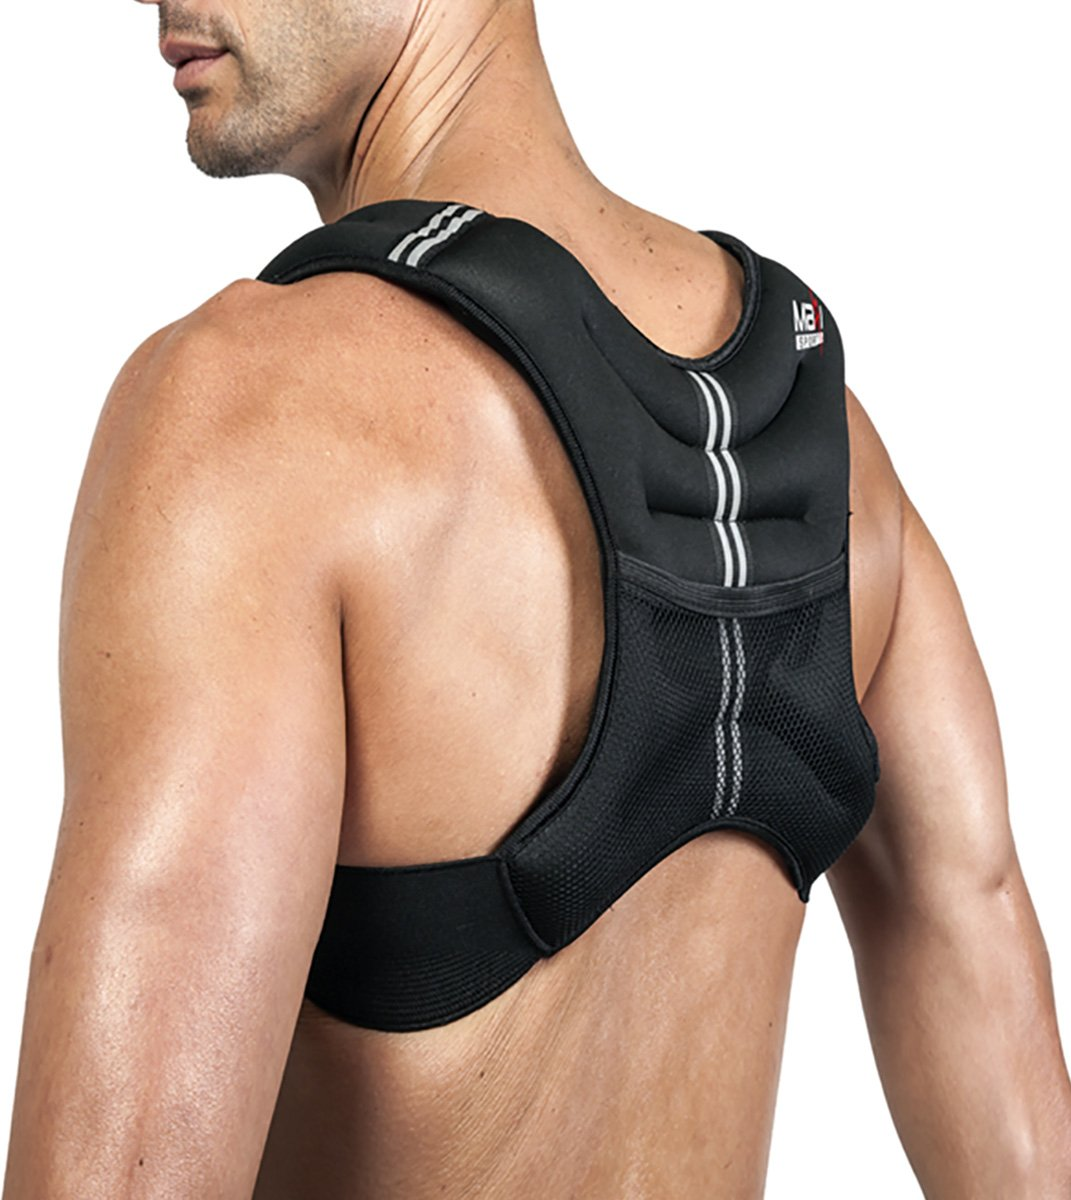 Maxi Sport - Weight Vest By Maxi Climber by Maxi Climber